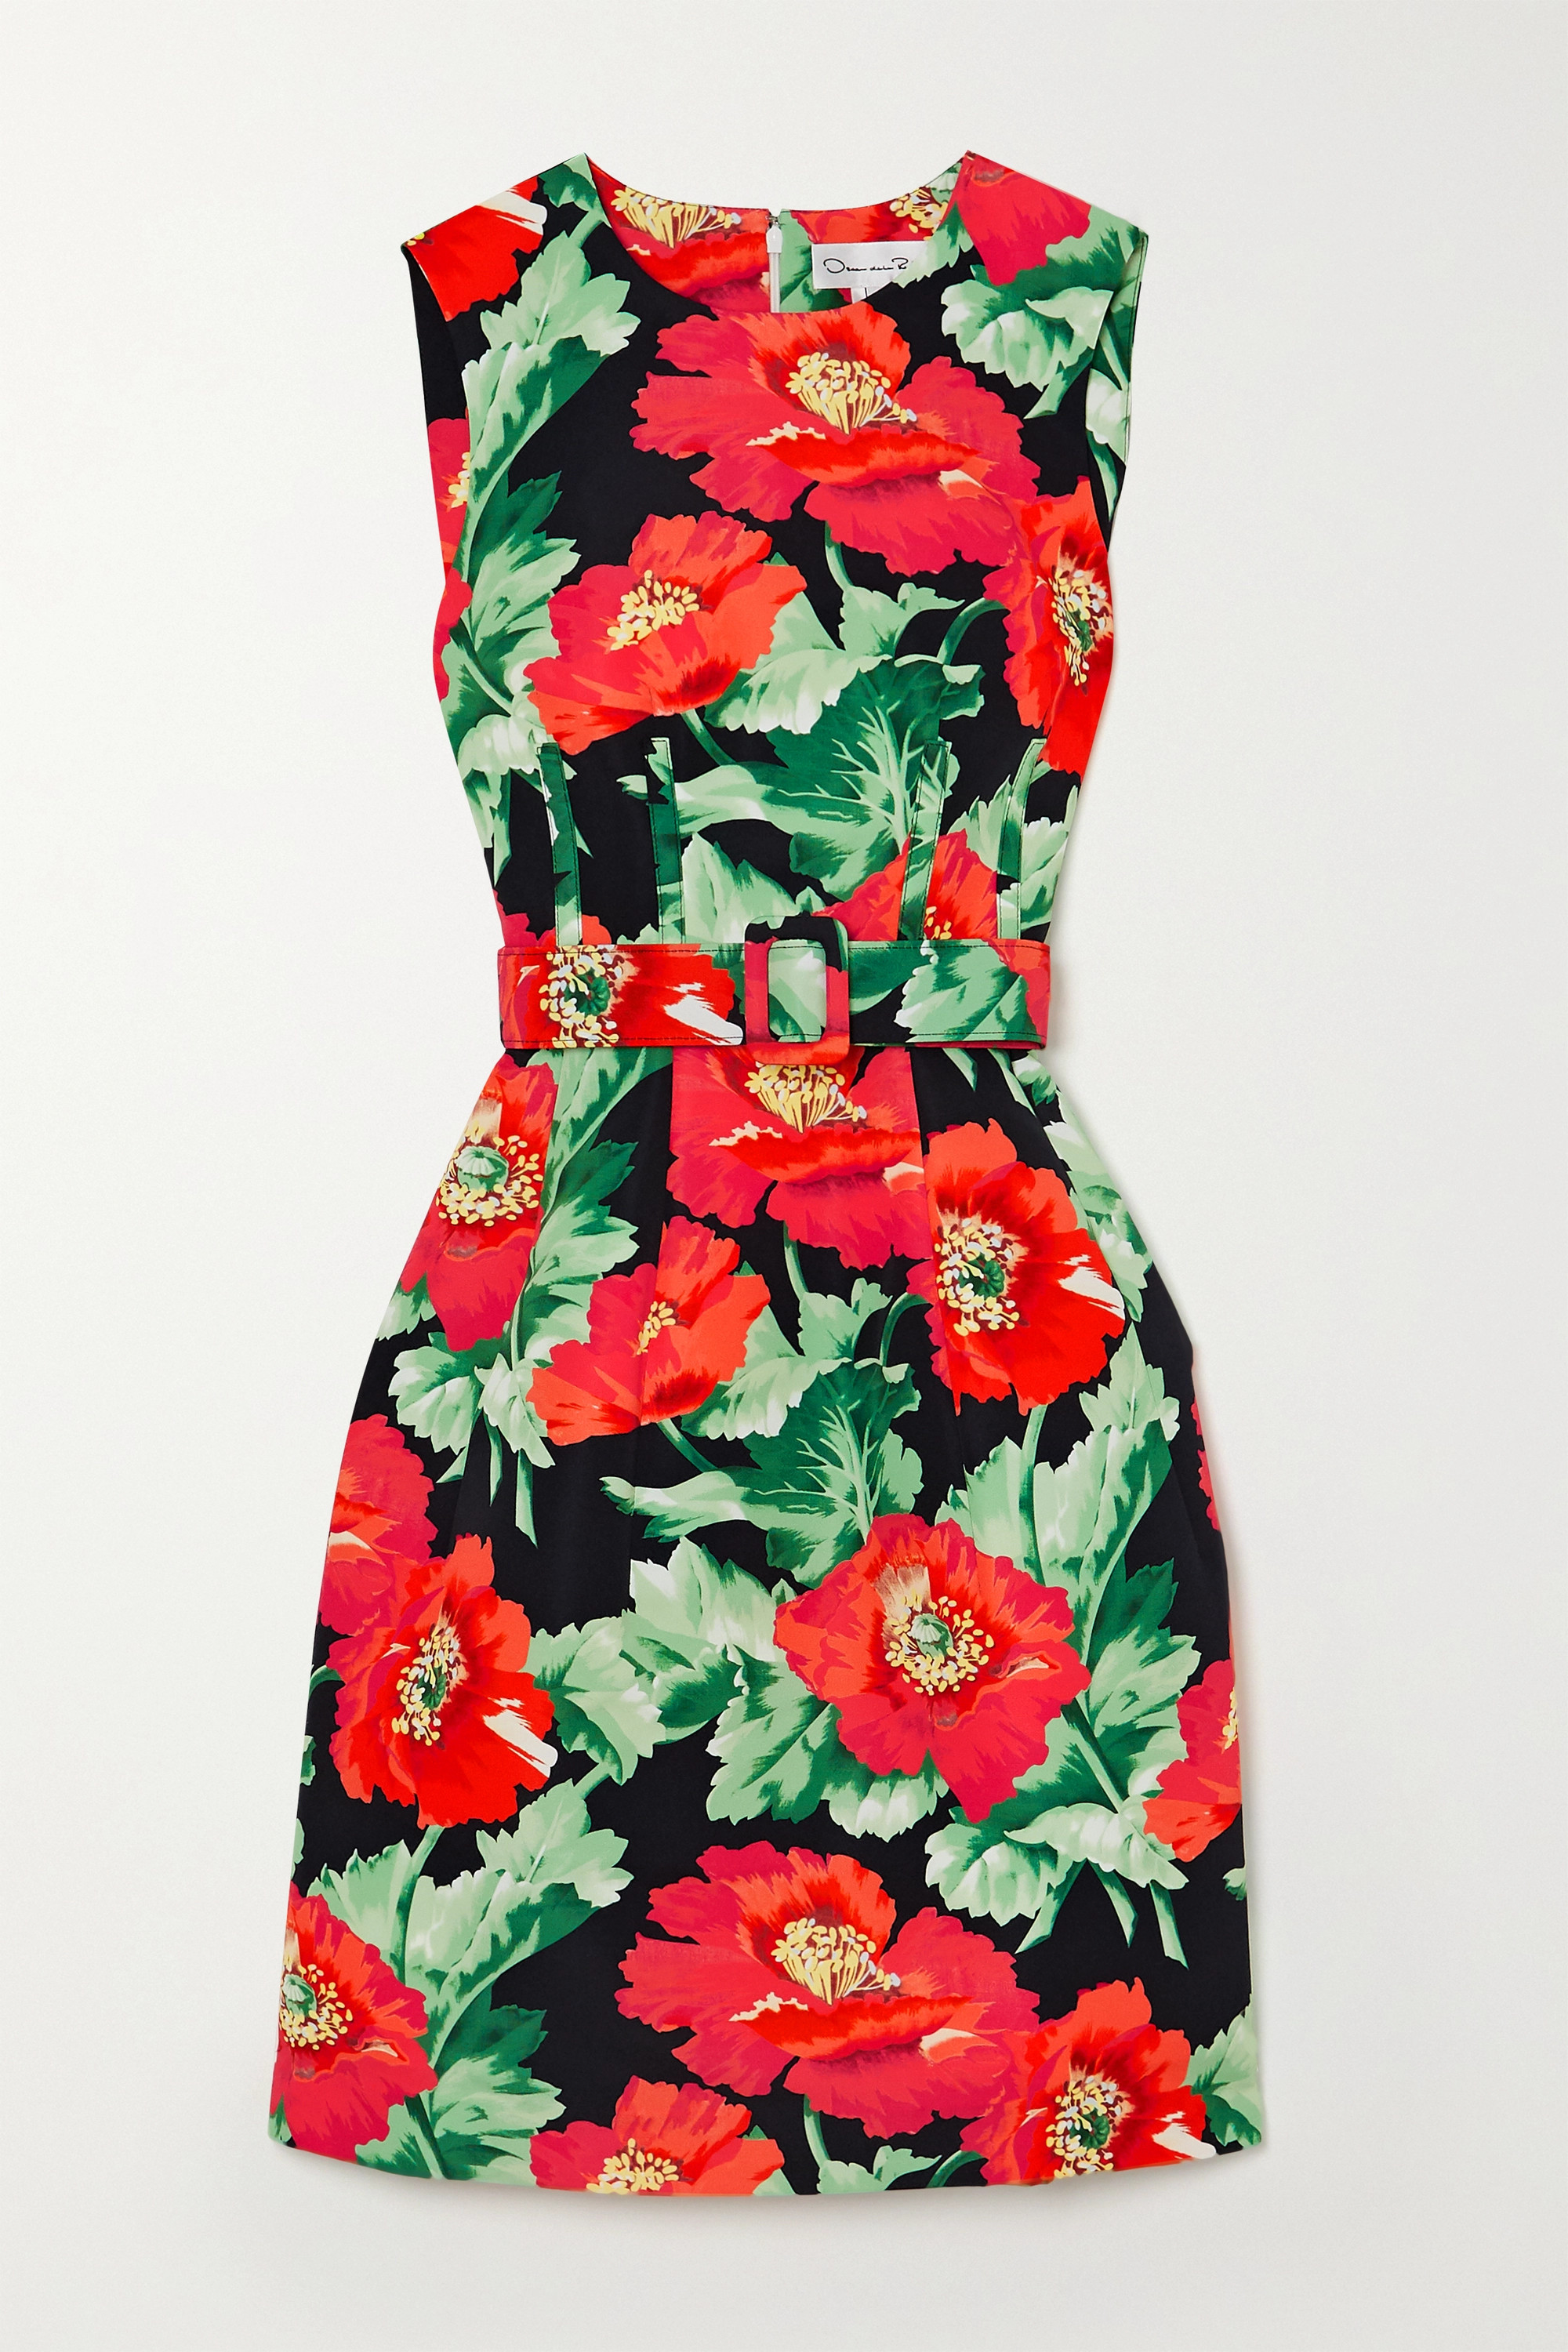 Fame Strap Garment Leather Floral Red